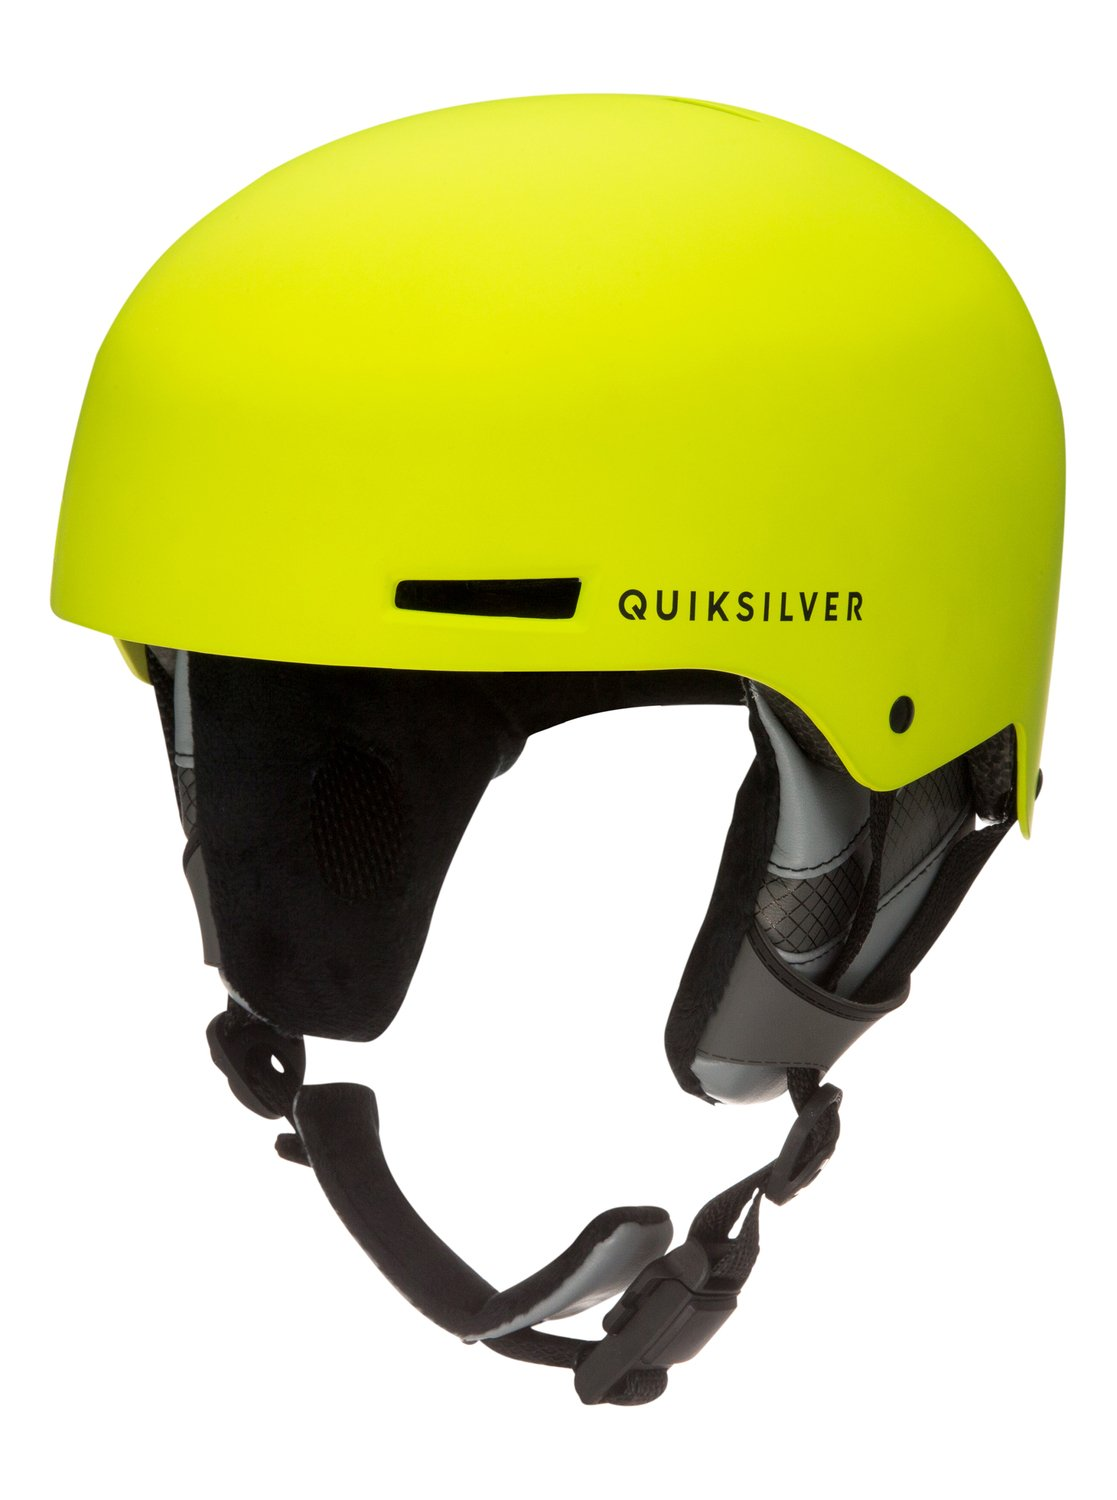 quiksilver axis snowboard ski helmet casque de snowboard ski homme ebay. Black Bedroom Furniture Sets. Home Design Ideas